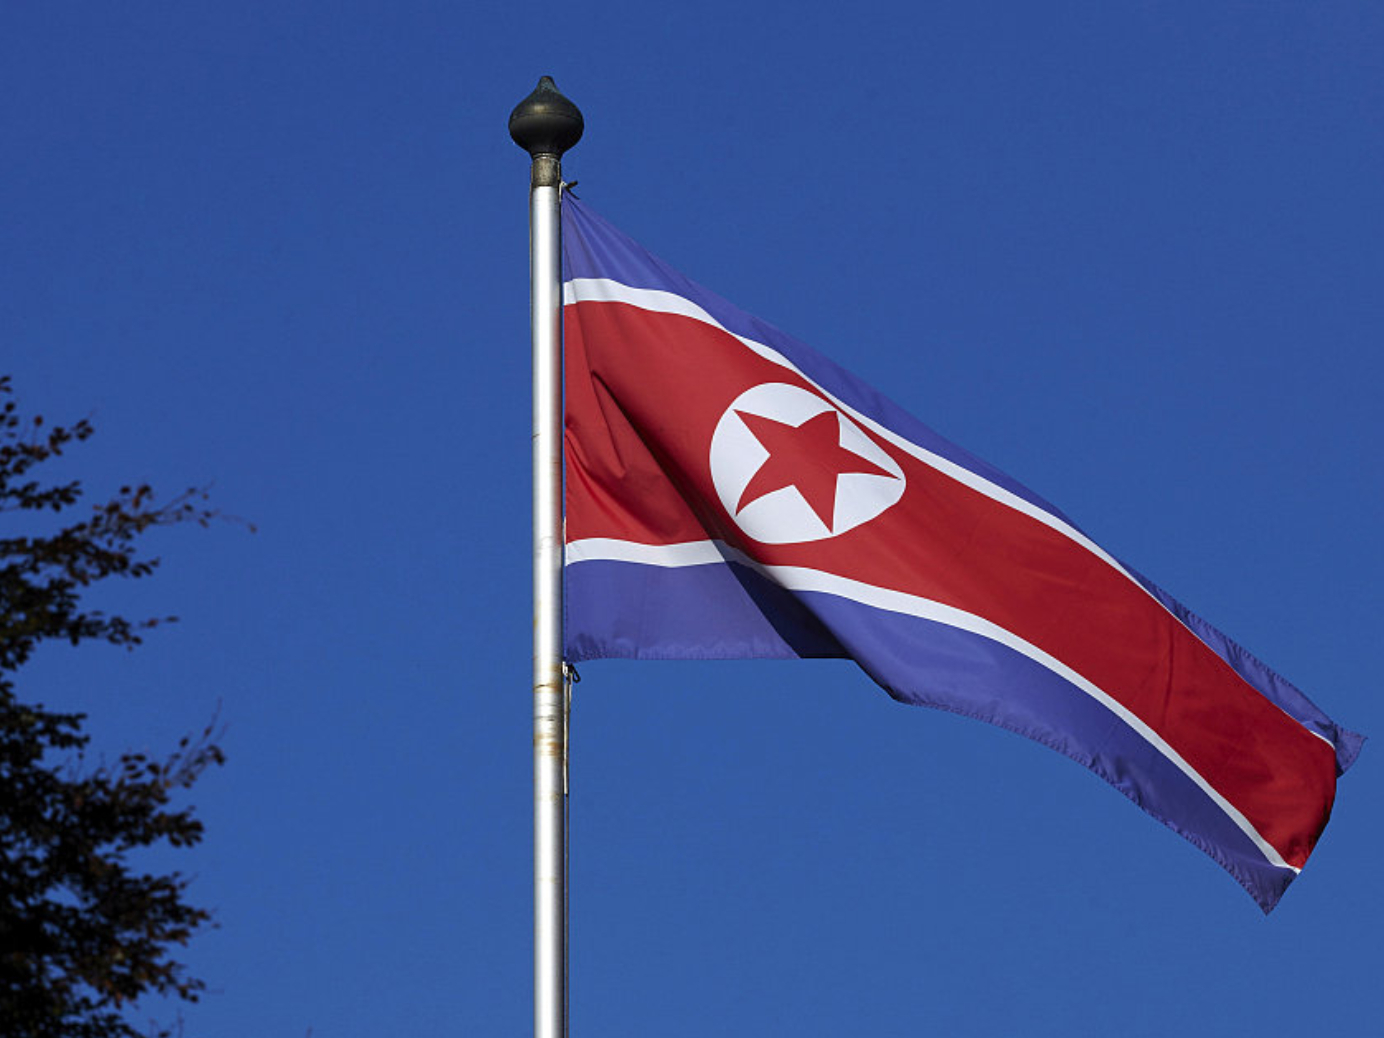 China, Russia seek lifting of DPRK sanctions